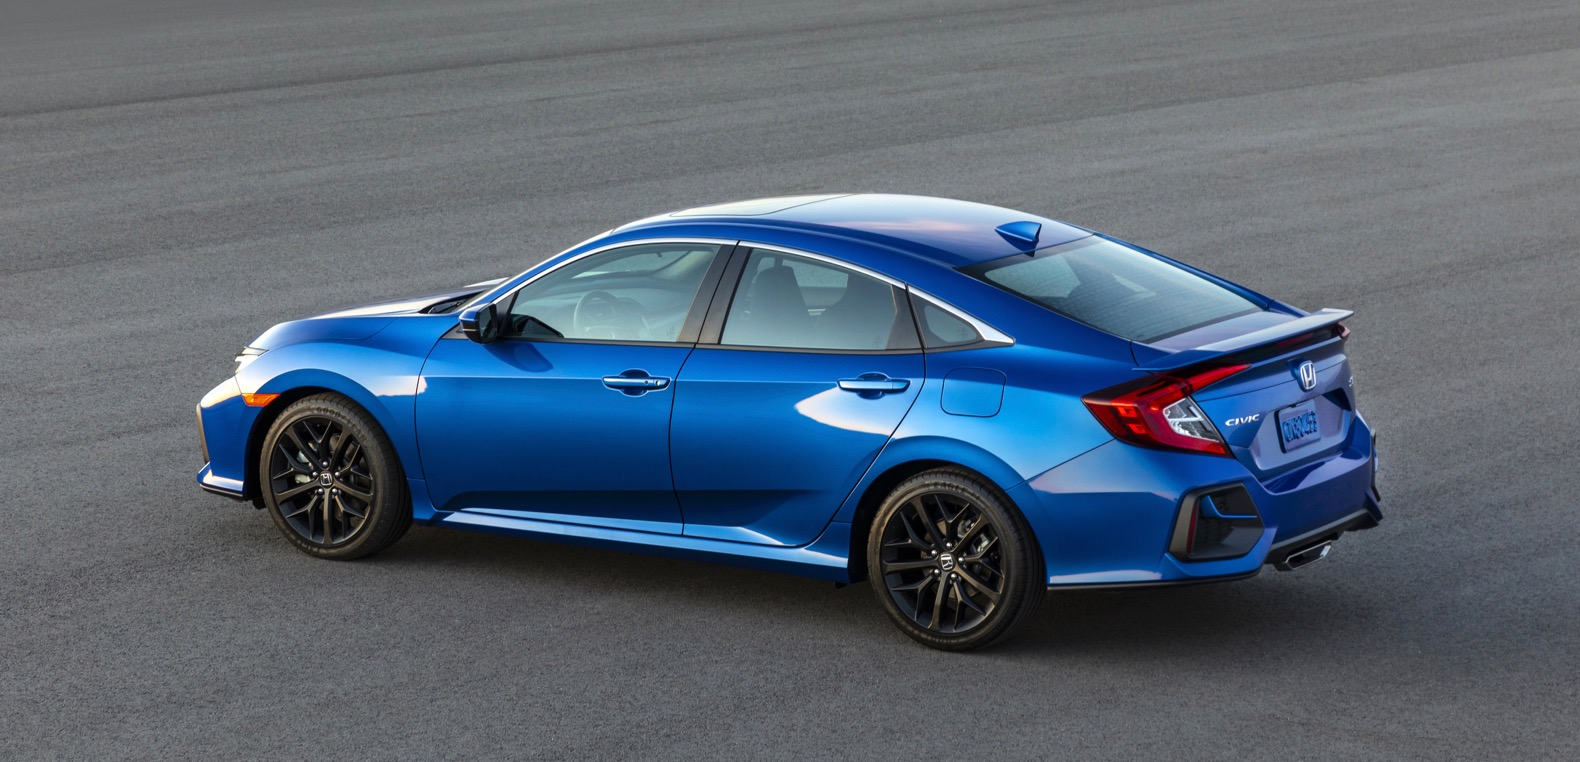 2020 Honda Civic Si Gets Some Updates The Torque Report